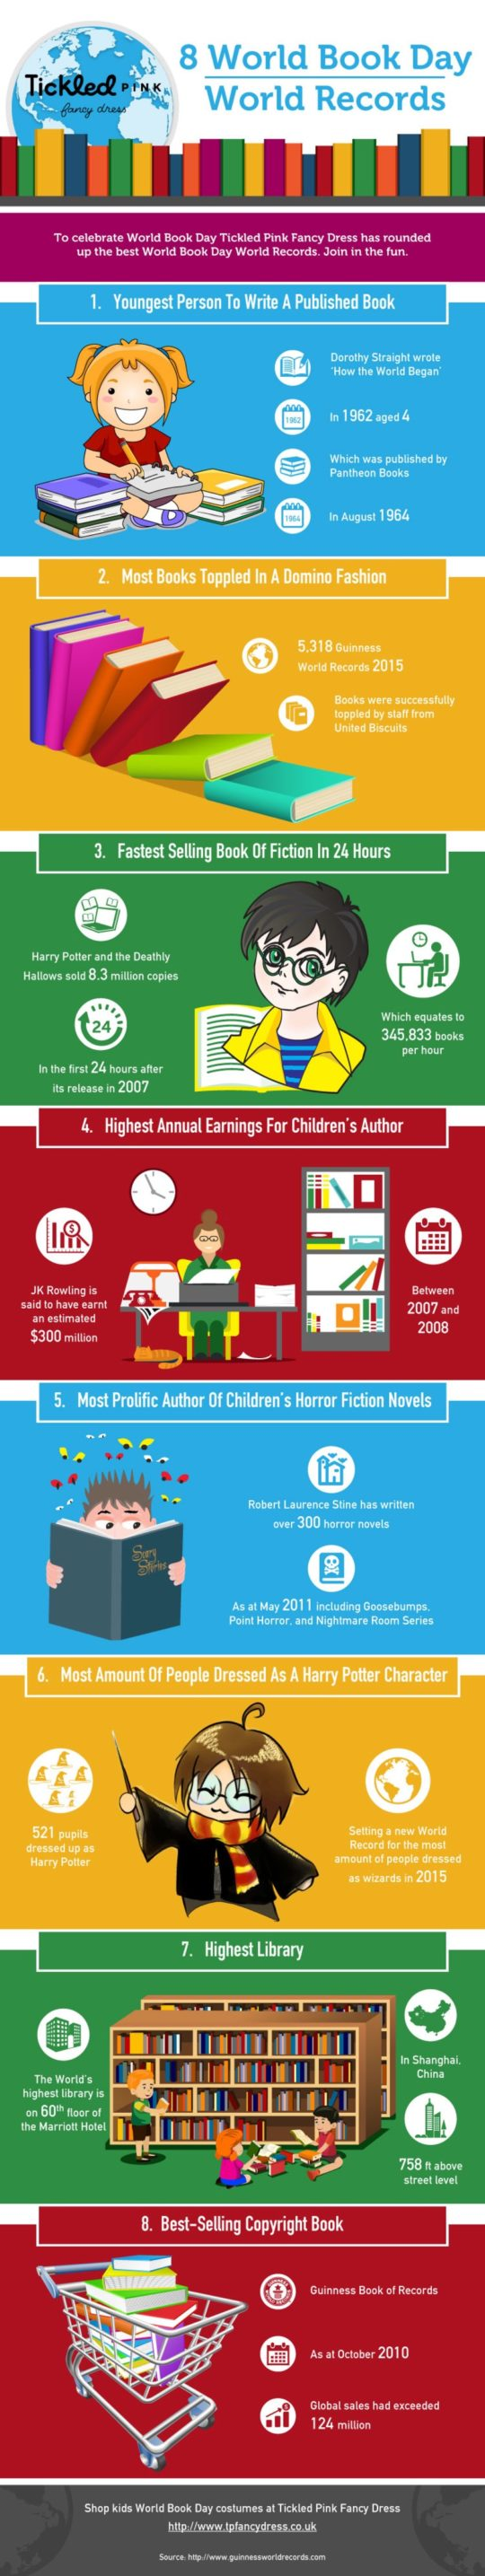 Infographic: Some Guinness world records related to books and reading for World Book Day